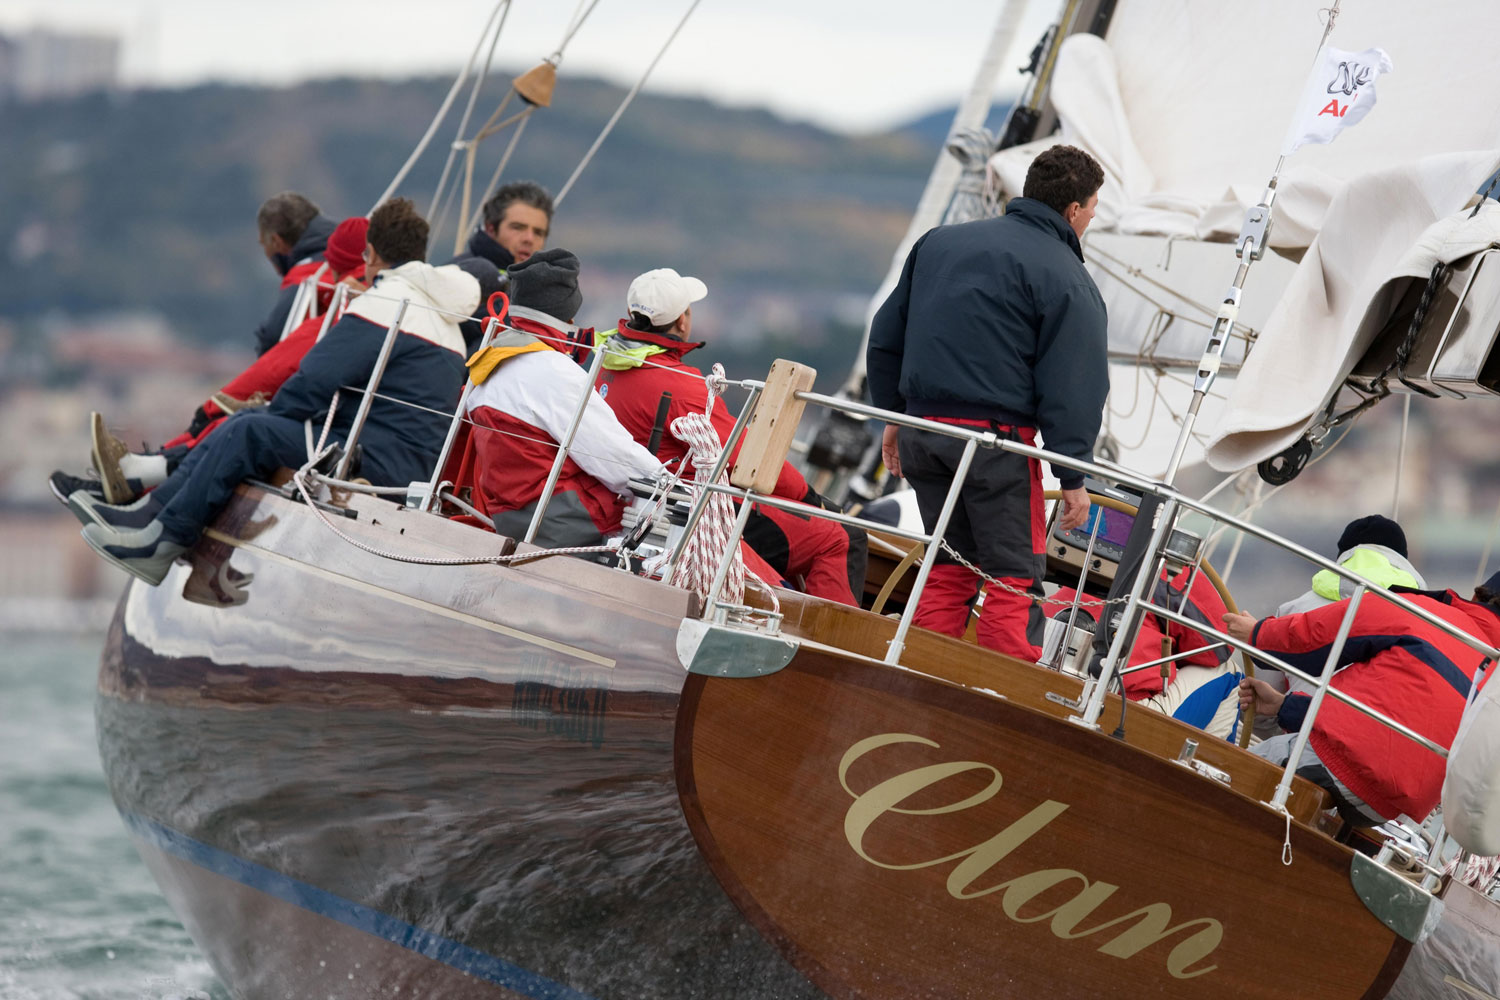 clan 2 carlini sailing yacht